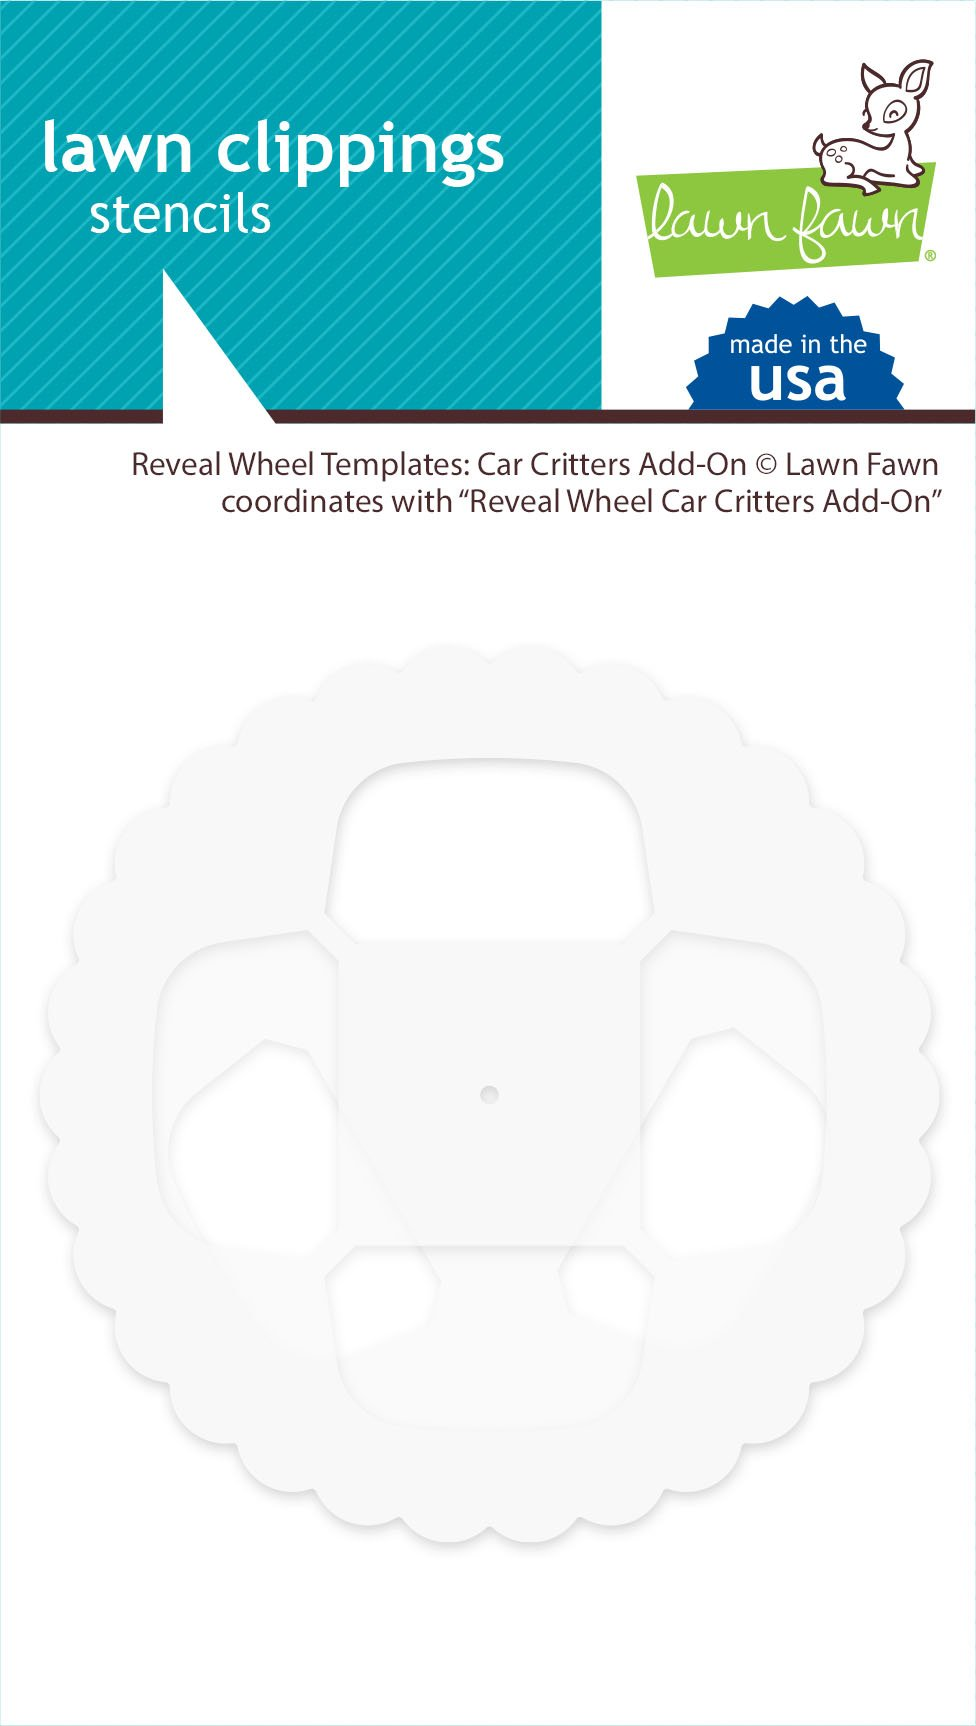 Lawn Fawn - Reveal Wheel Templates: Car Critters Add-on (PRE-ORDER)